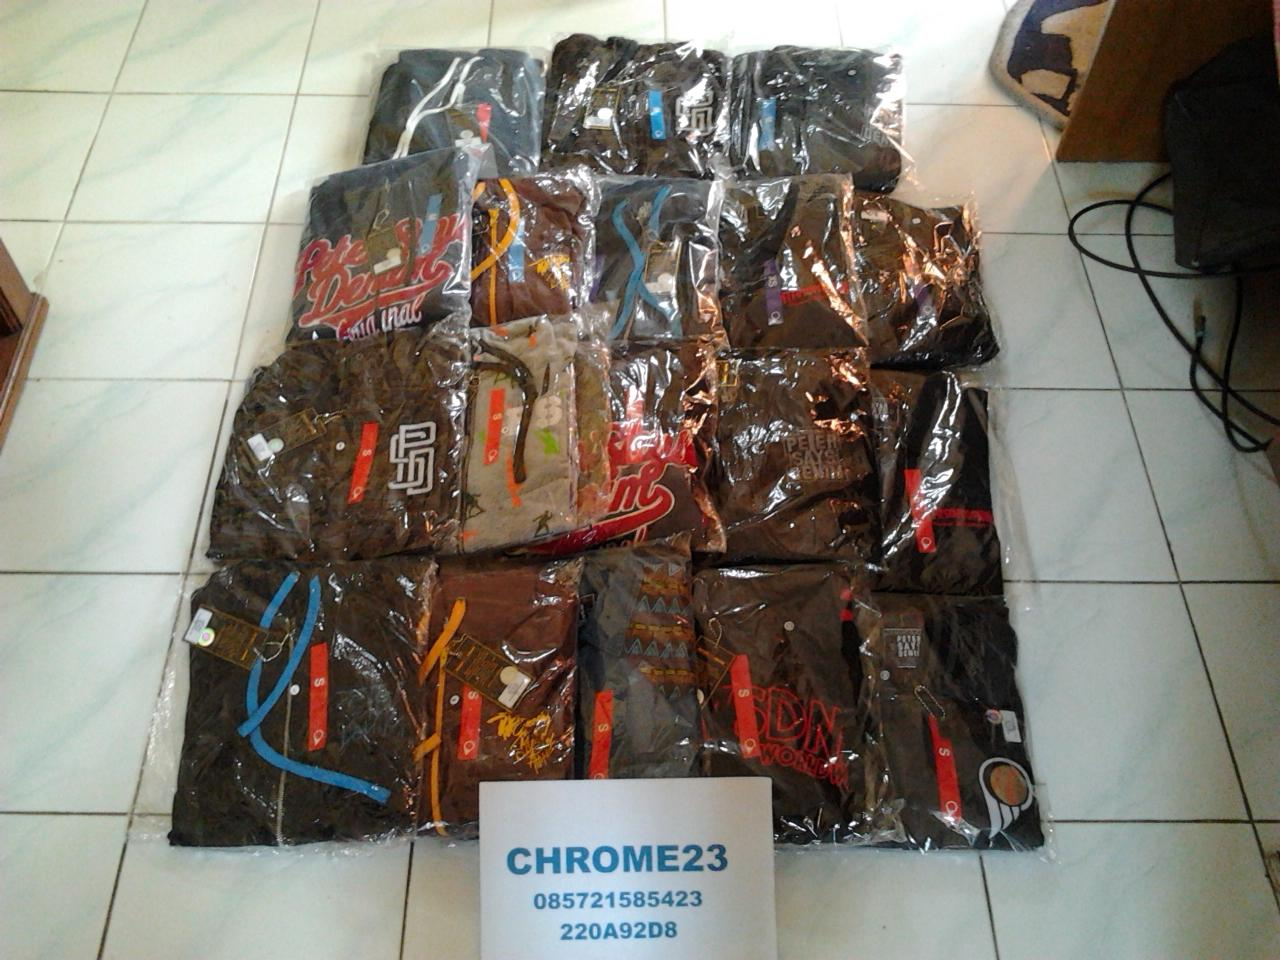 UPDATE NEW STOCK WITH SPECIAL PRICE PETERSAYSDENIM ORIGINAL,,GRAB IT FAST!!!!!